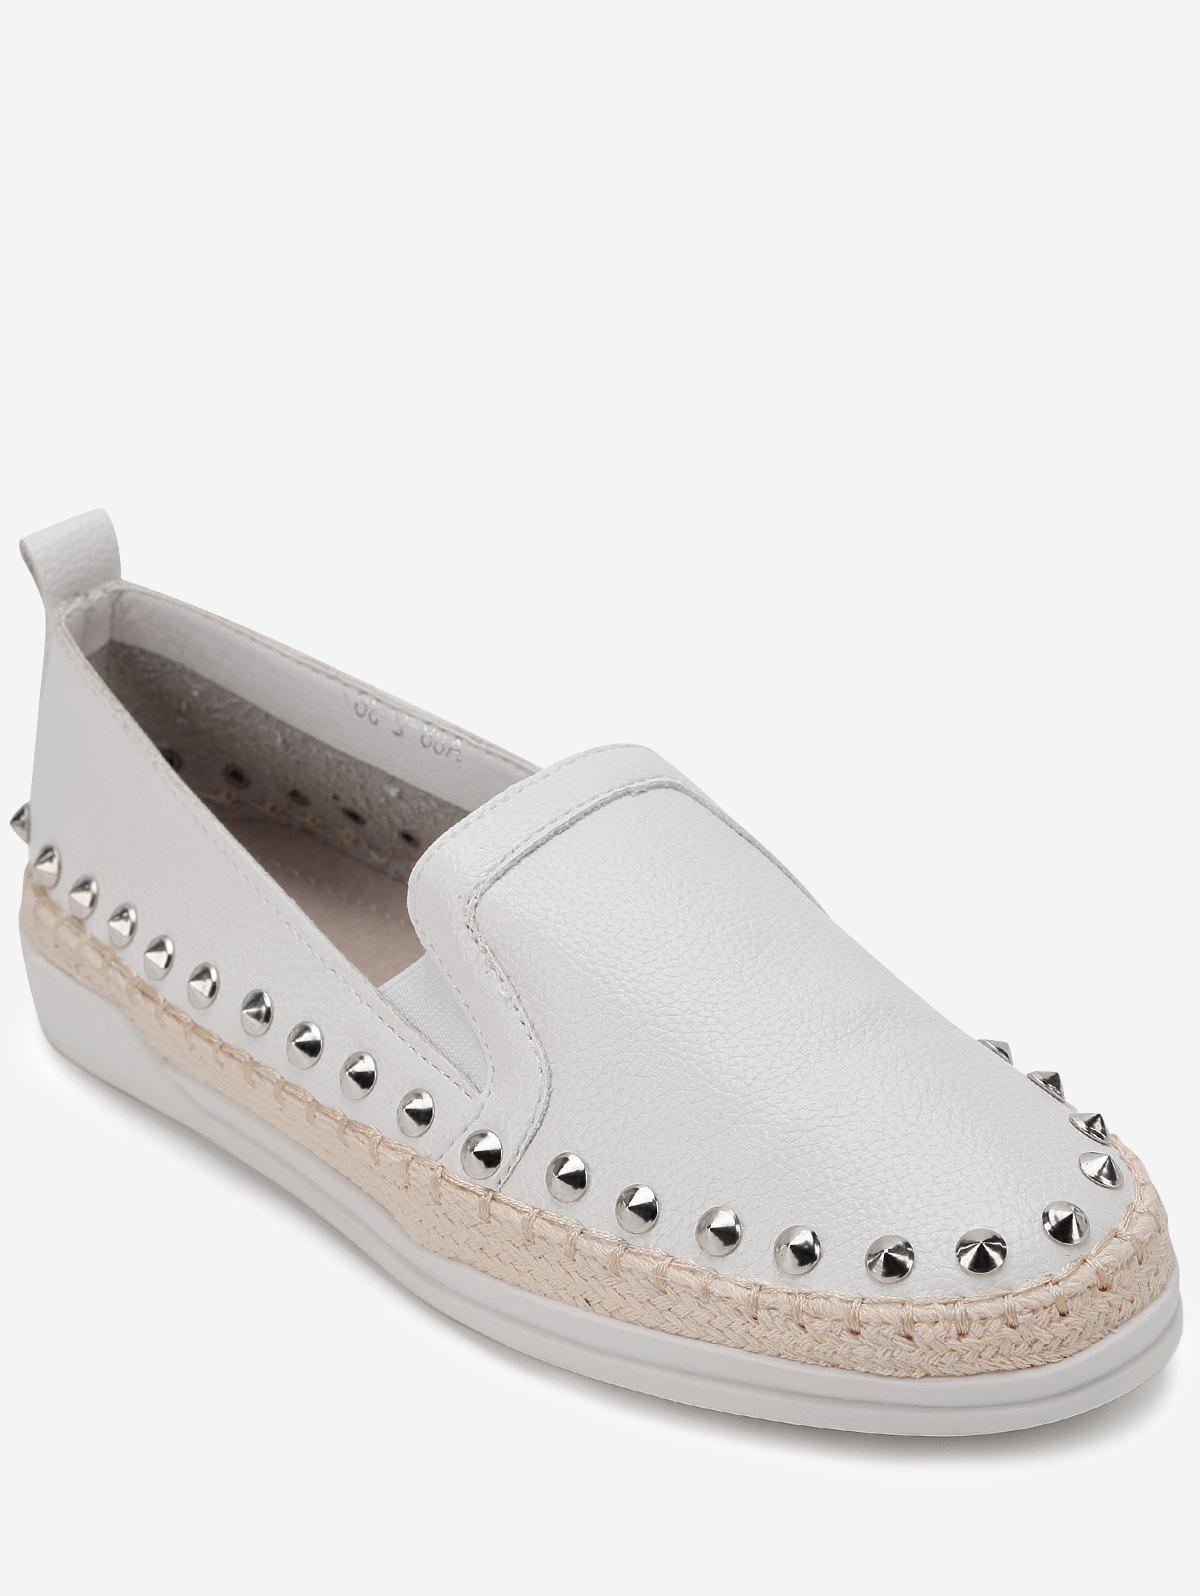 Buy Stud Slip-on Espadrille Flat Sneakers